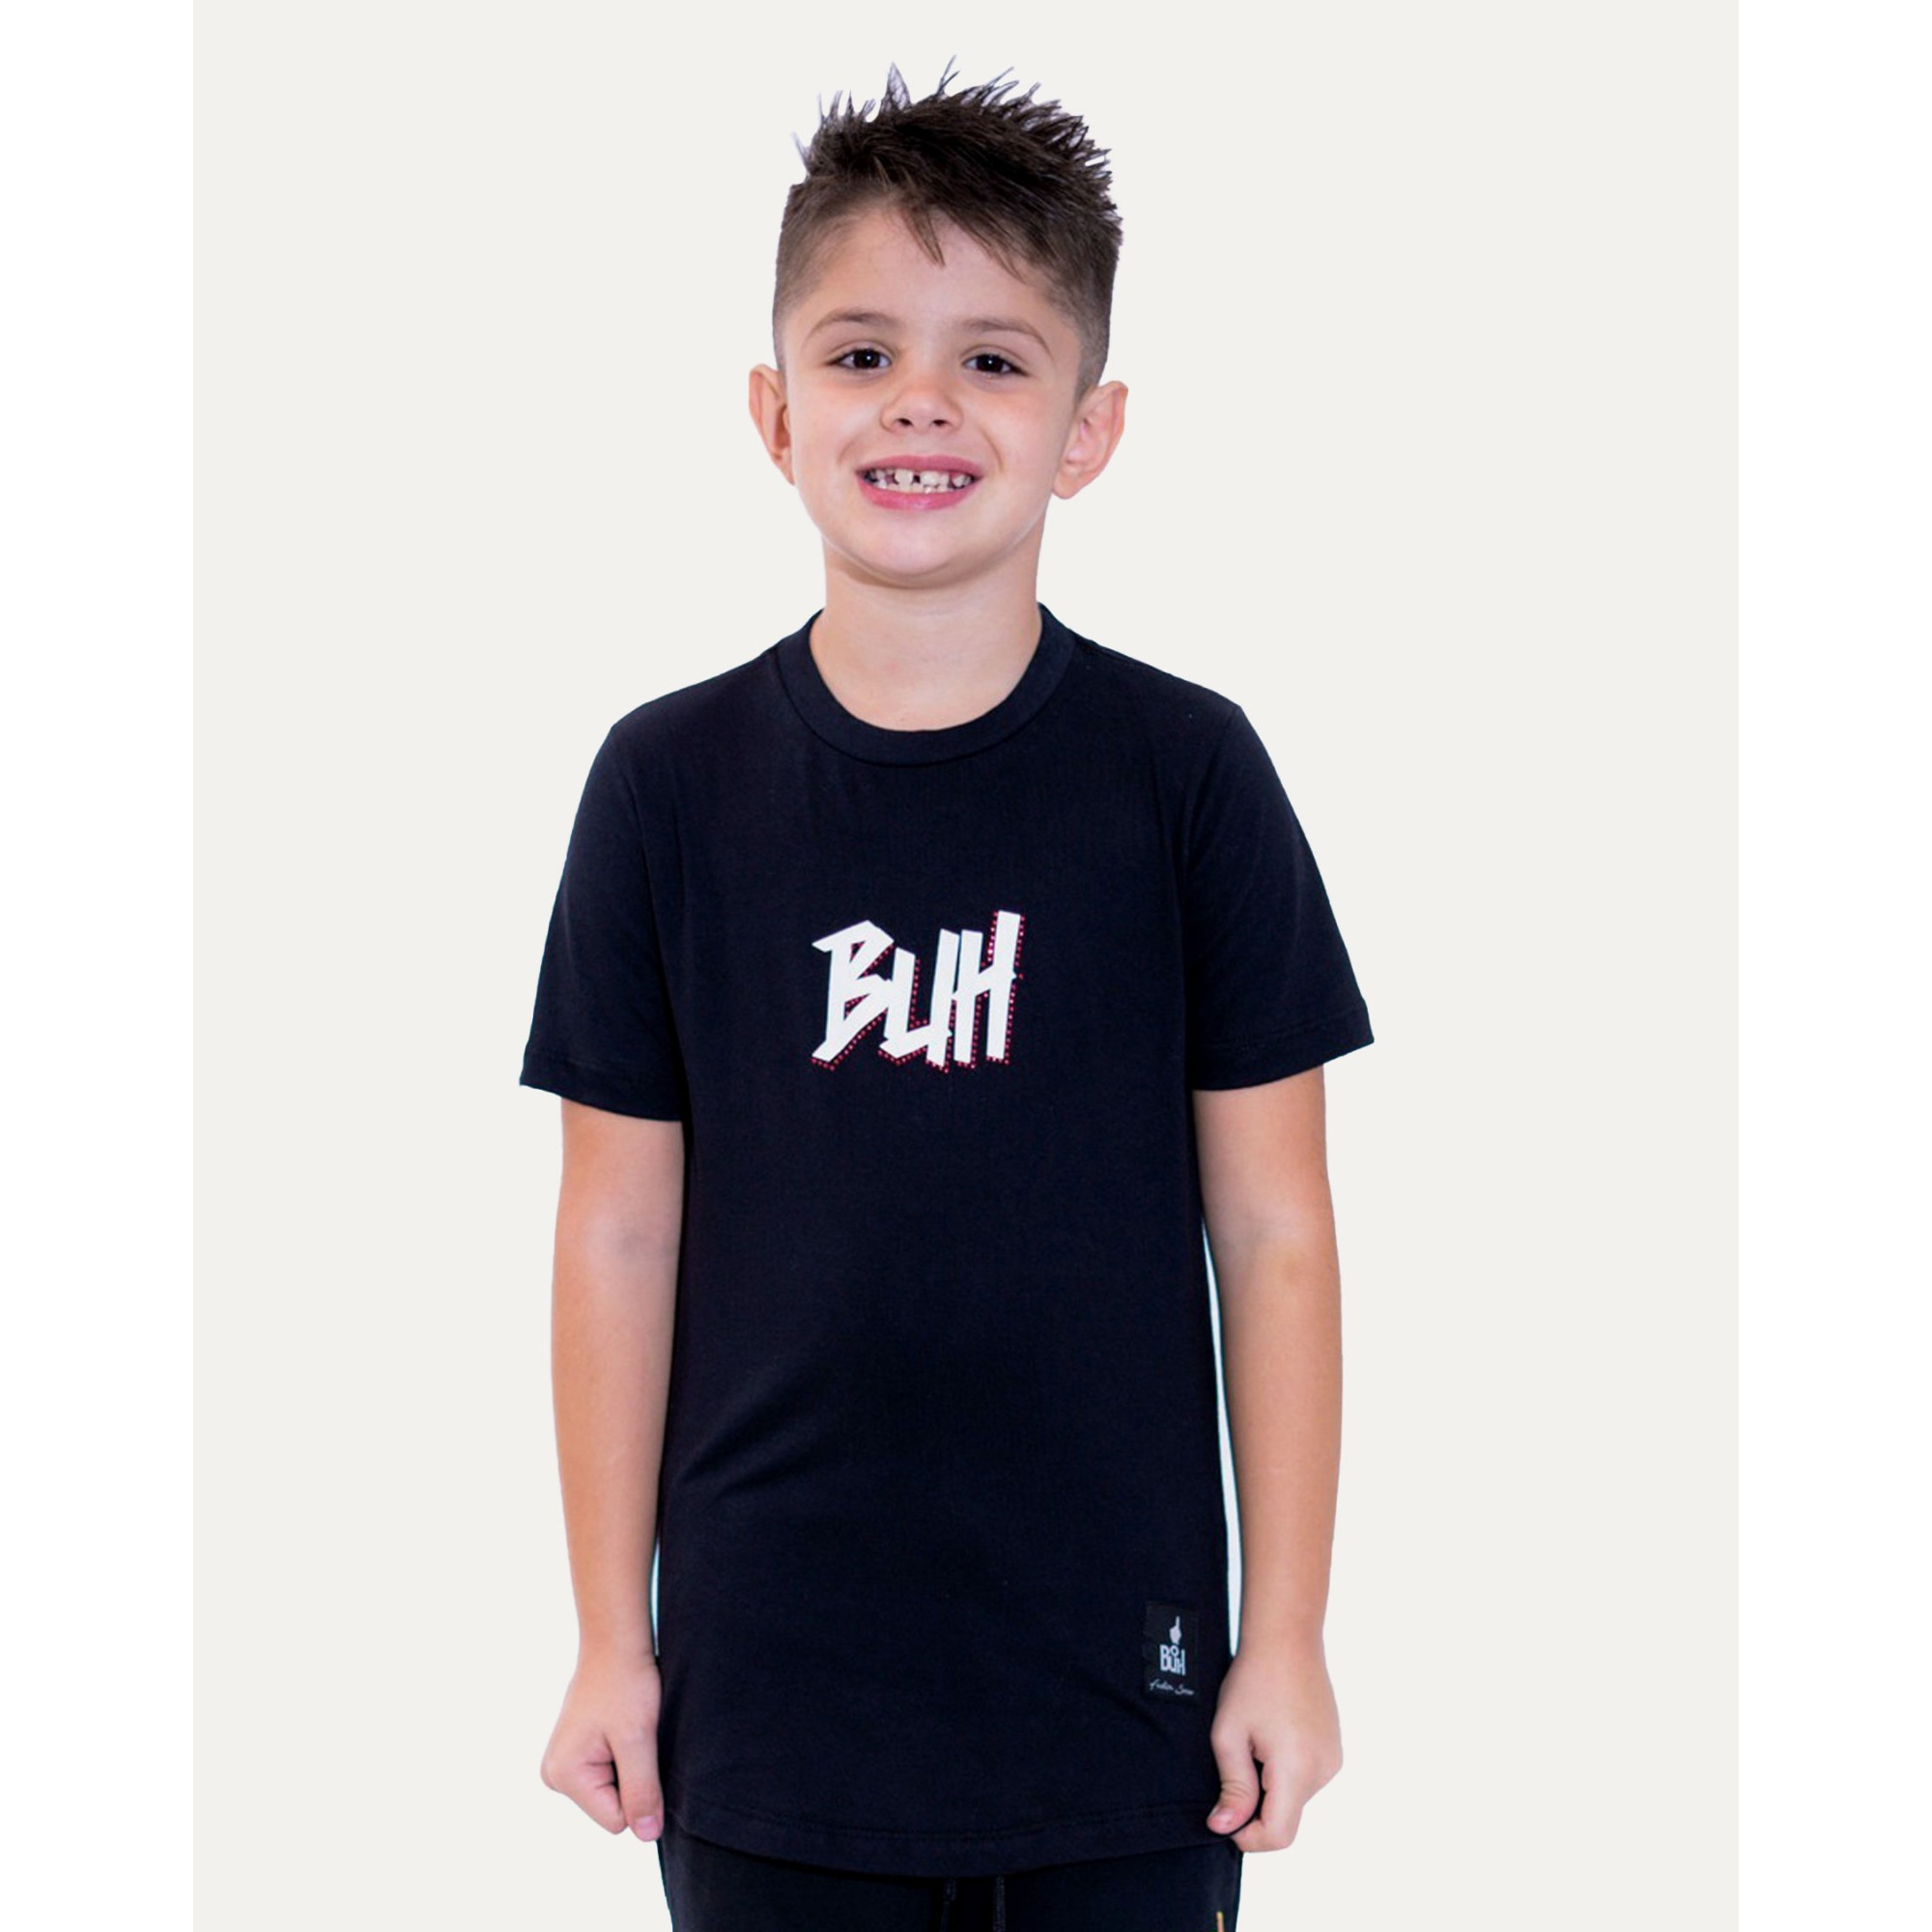 Camiseta Buh Kids Strass Logo Black